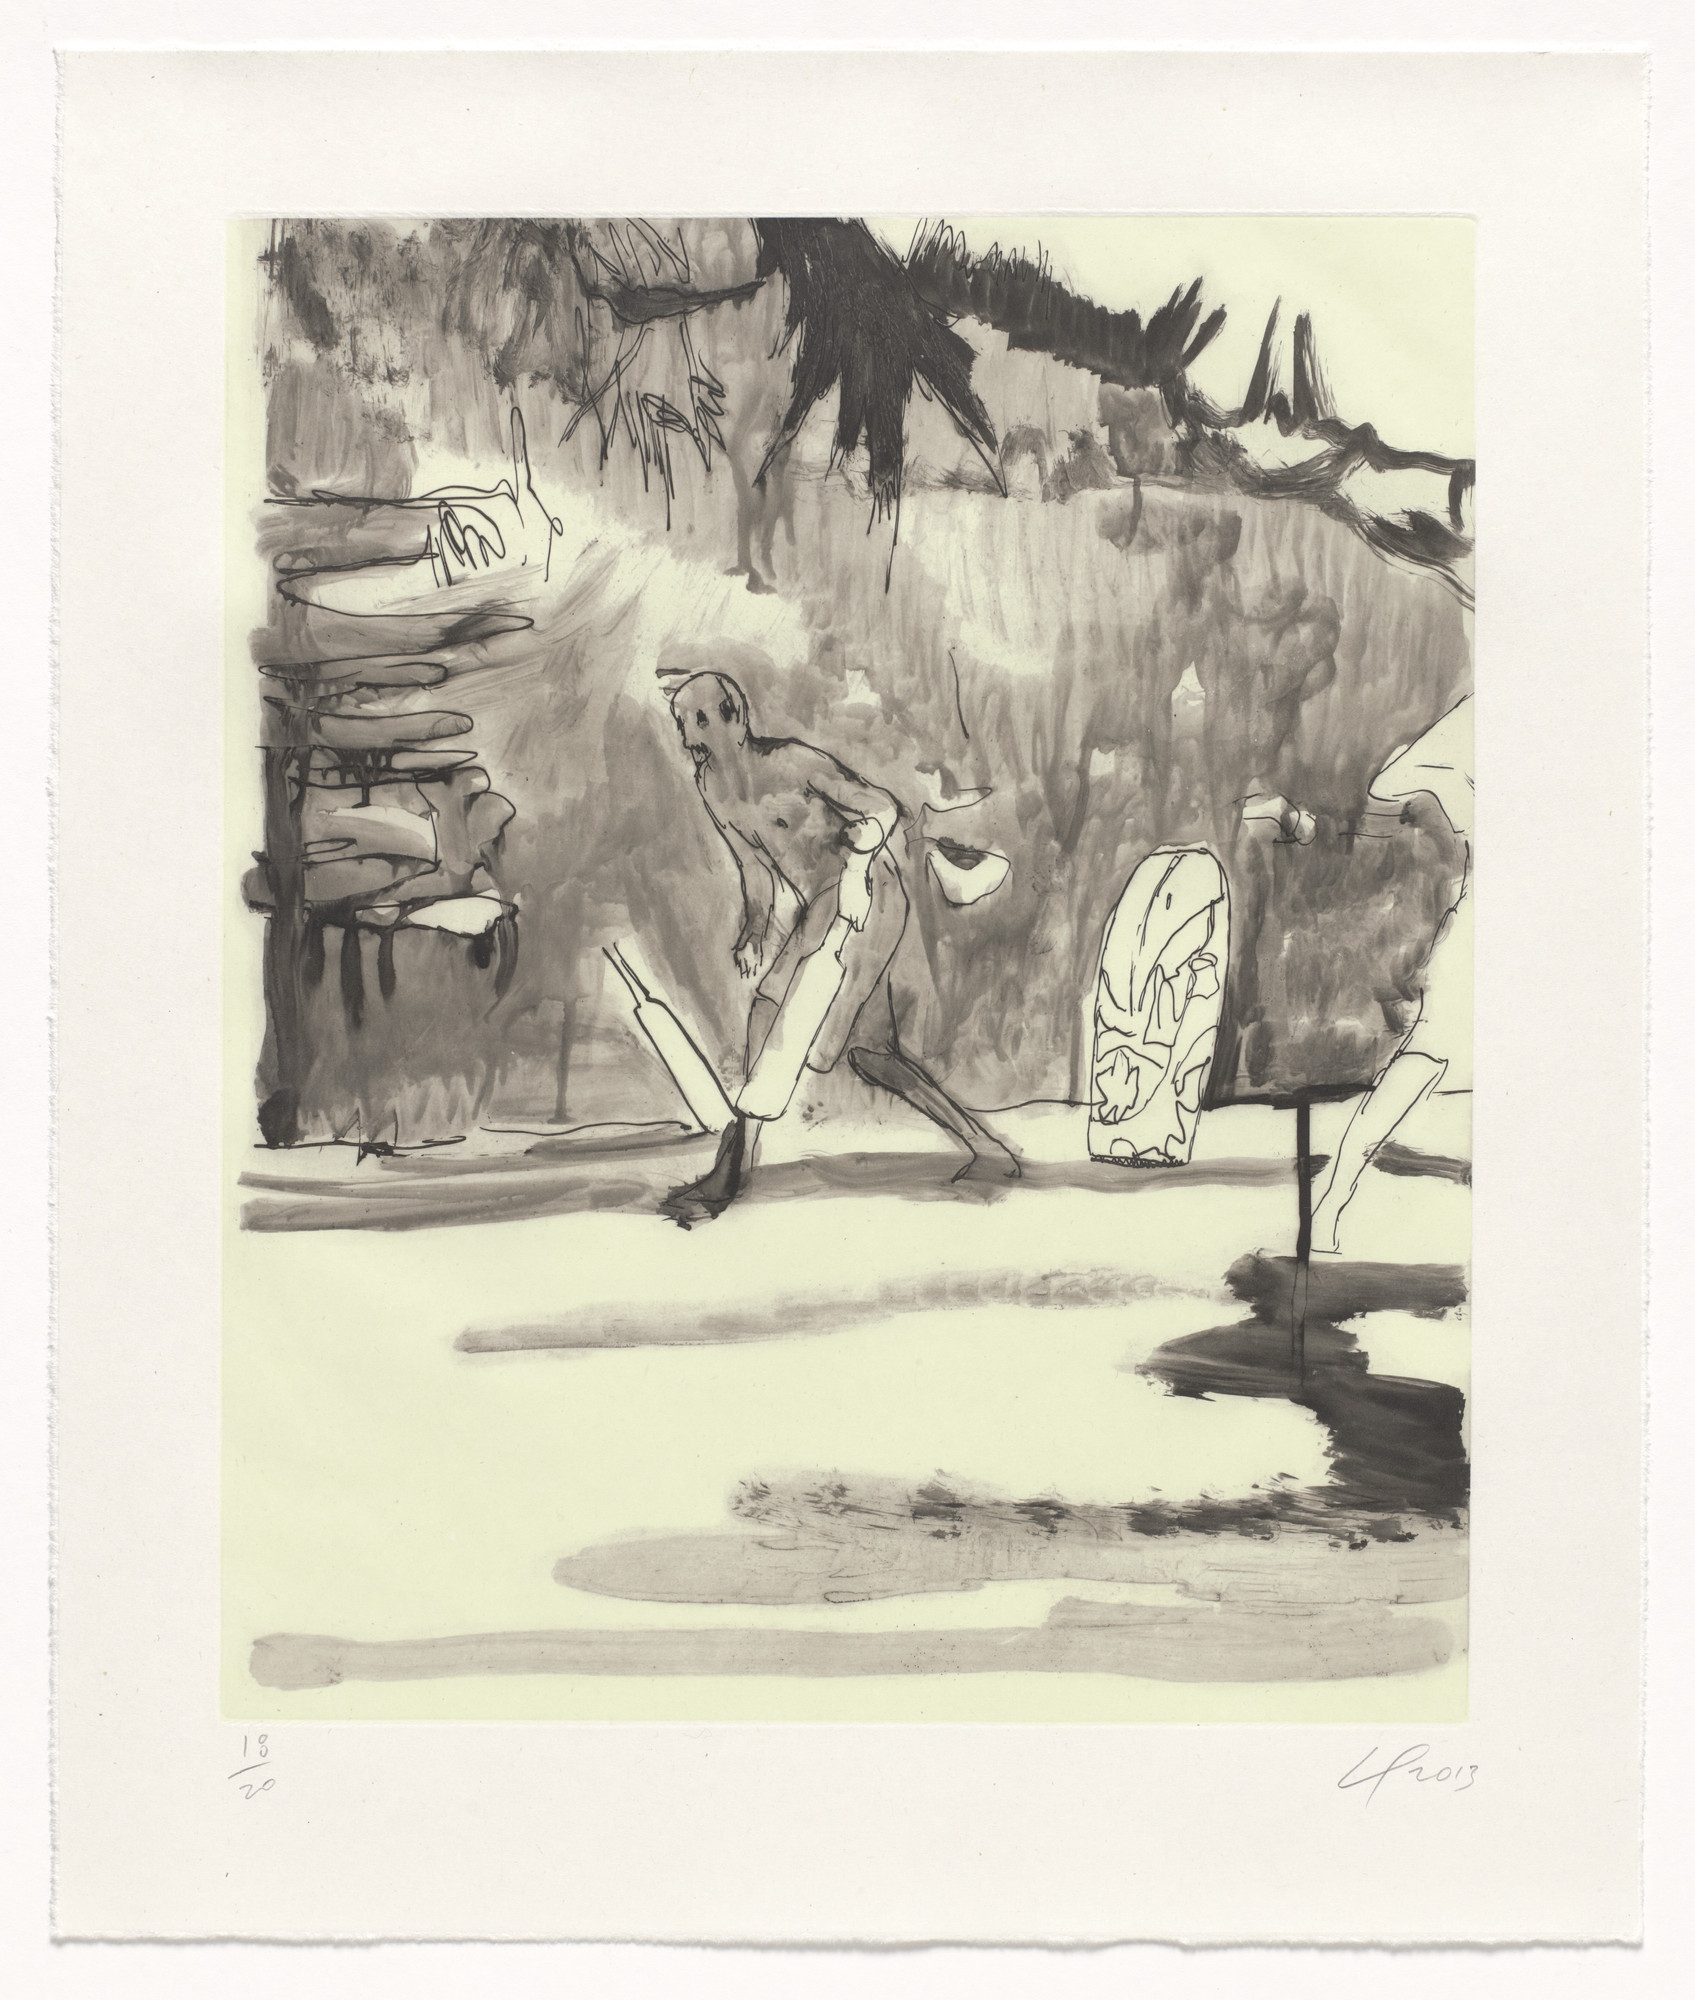 Peter Doig. Untitled, Small Cricket Player from an untitled series. 2013